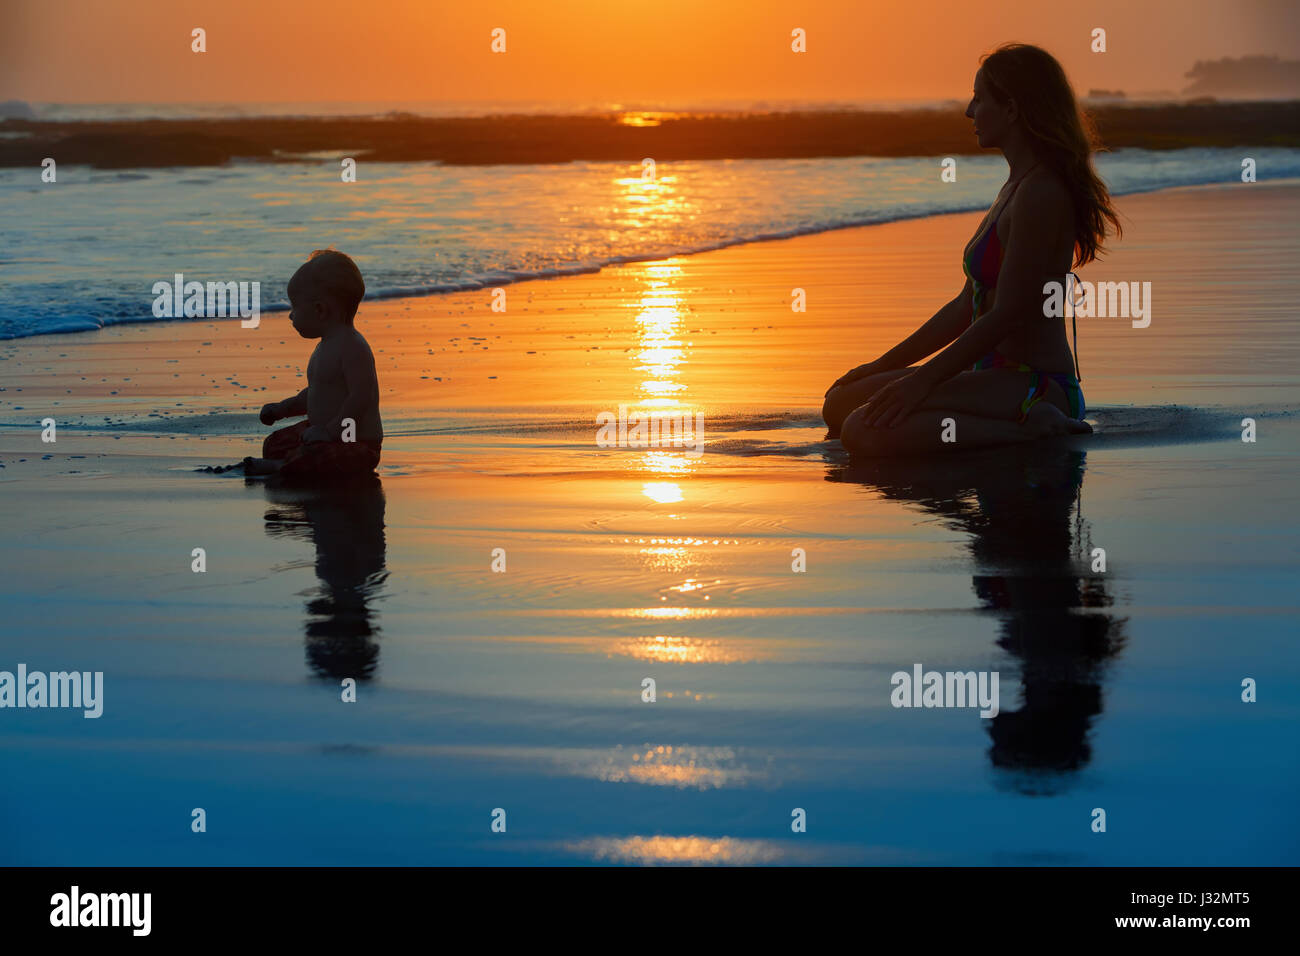 Family swimming fun on black sand beach with sea surf. Happy mother, baby son sit and look at ocean on sunset sky - Stock Image